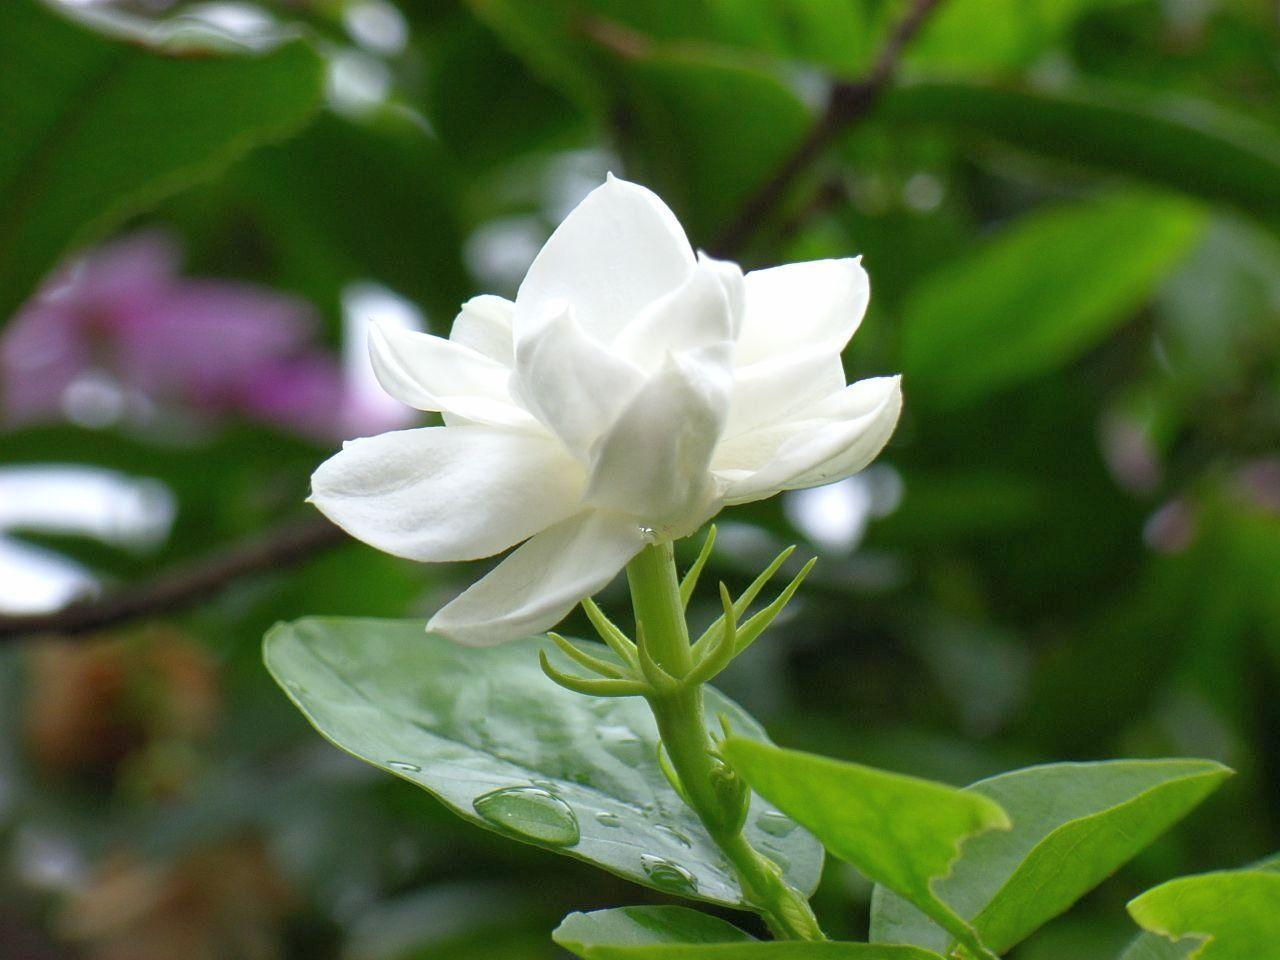 jasmine flower Jasmine is very popular because of its sweet smelling flower but it does grow fast & densely i don't use power tools but you could give it a go.